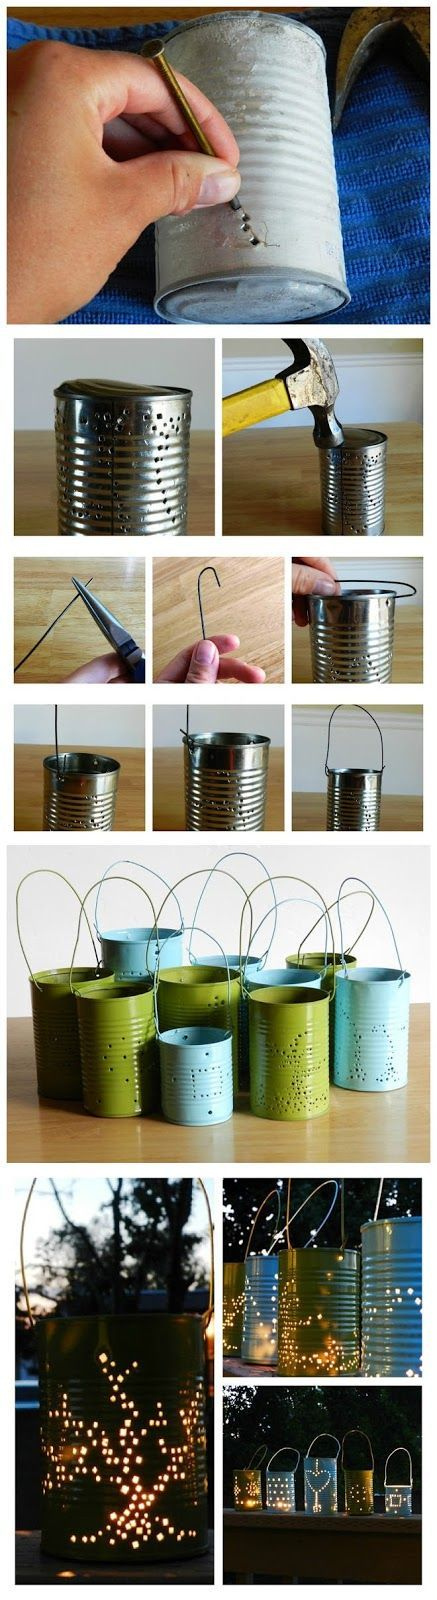 Fill a tin can with water, freeze it, and punch a design using a hammer and nail. once the ice has melted, you can paint the can's exteri...